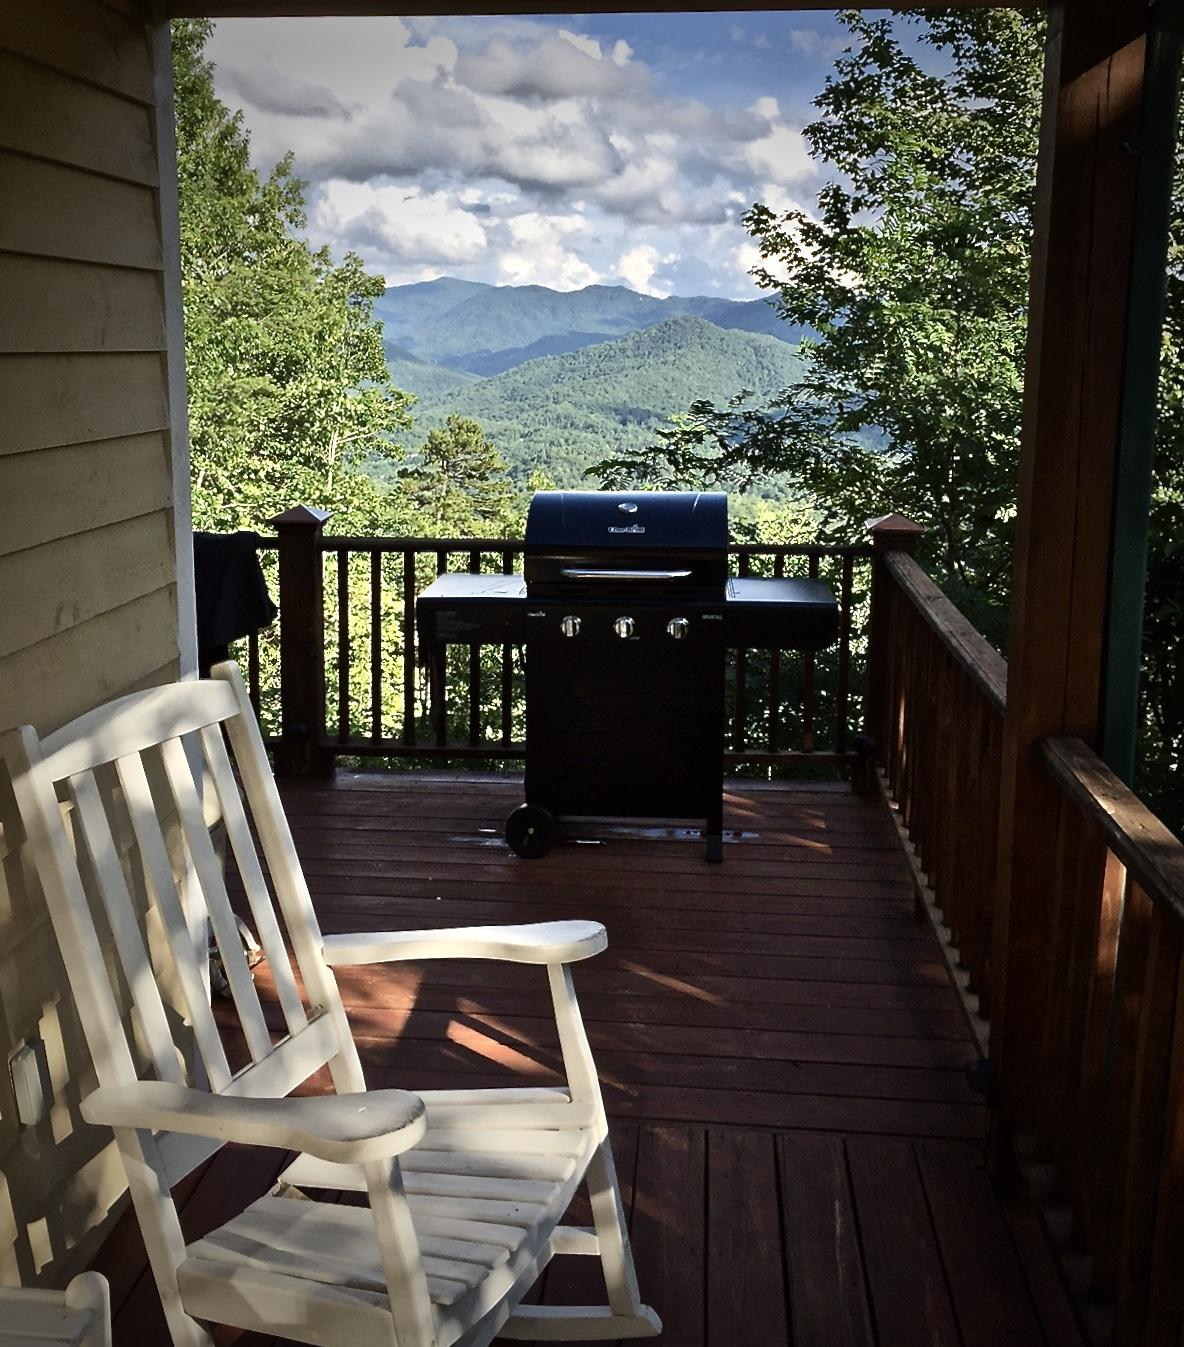 """Grilling out has never been more """"View-licious""""!"""